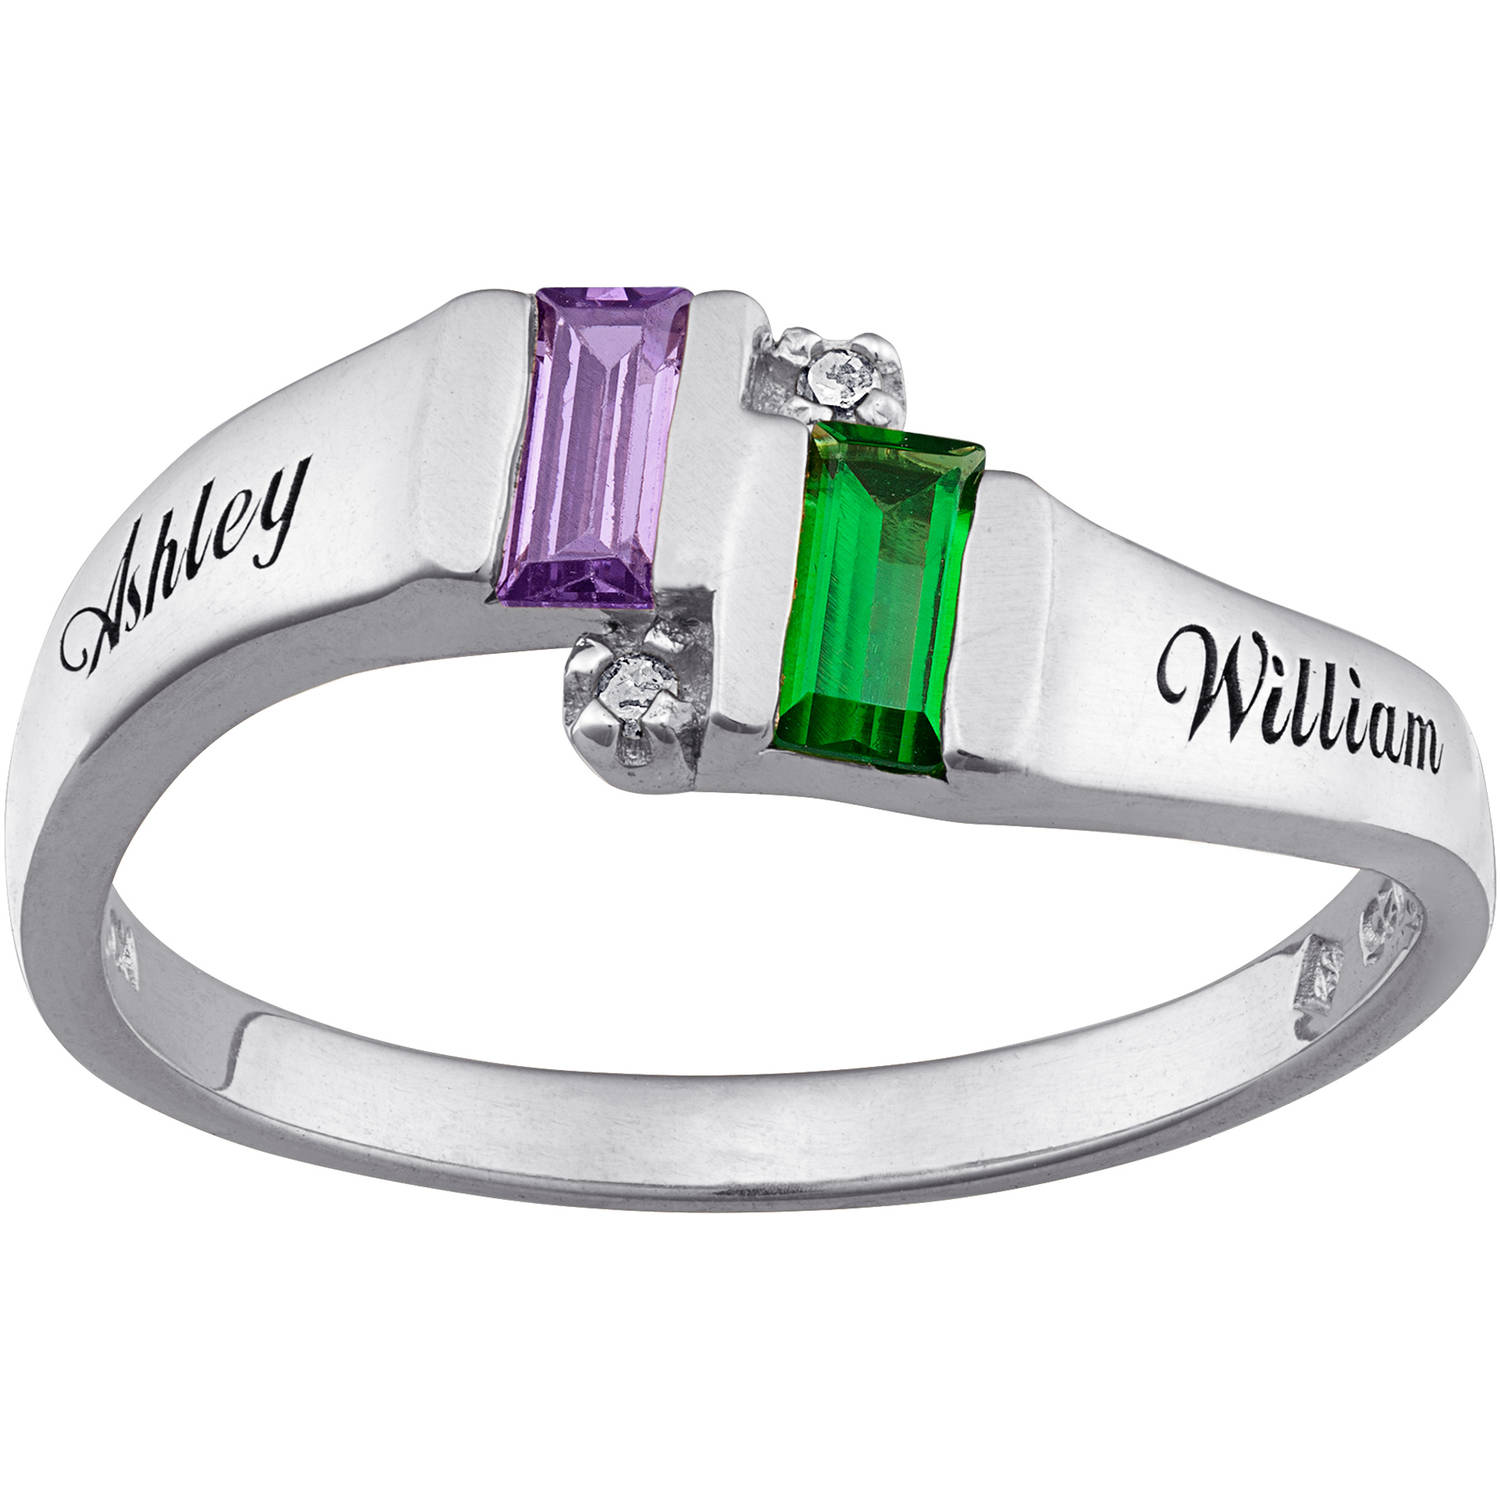 Personalized Sterling Silver Couples Birthstone Band